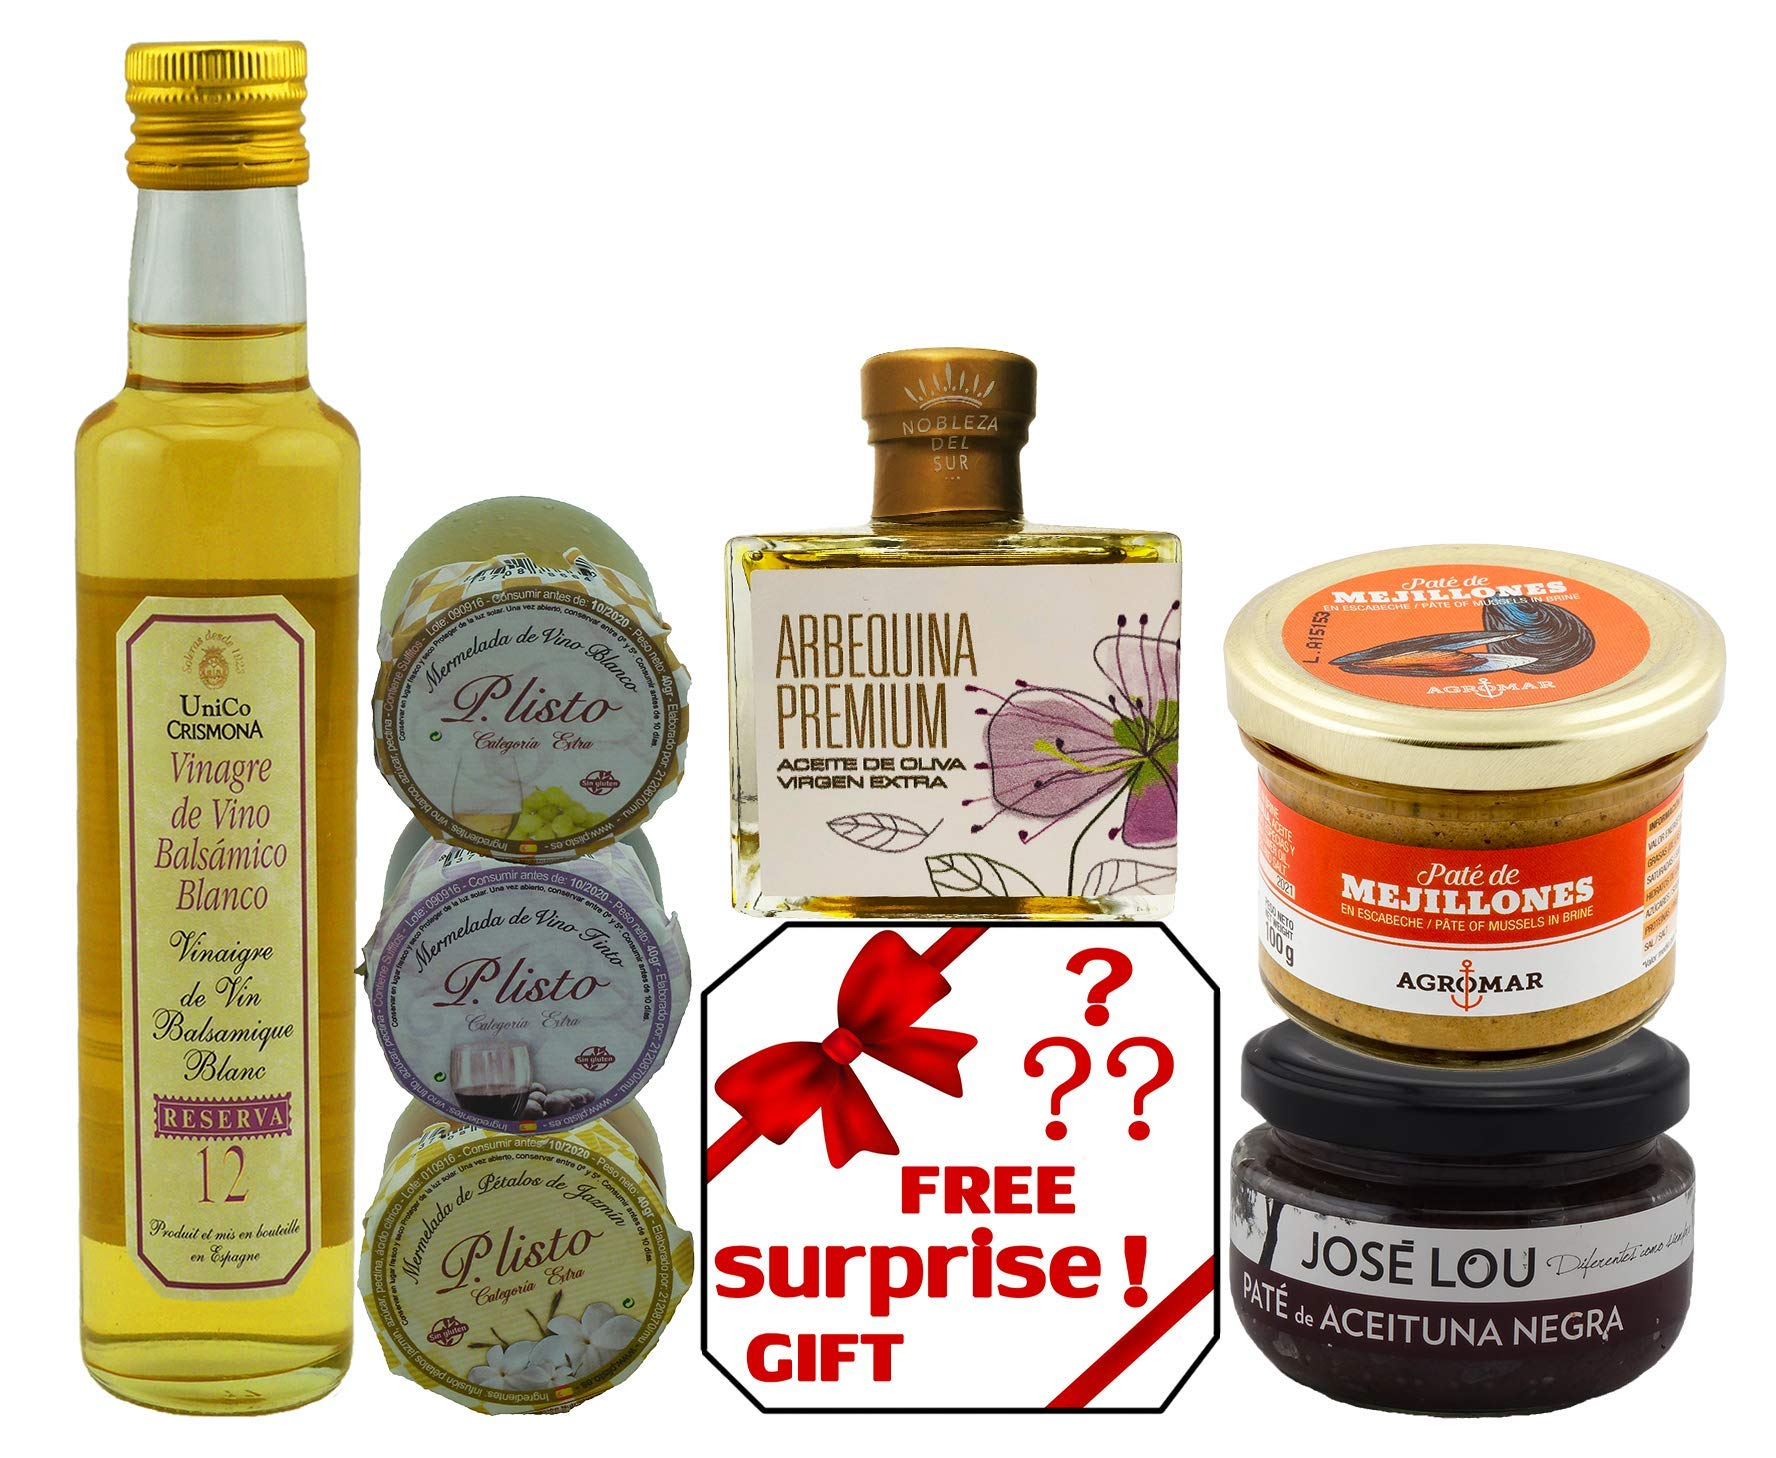 GIFT BASKET-IMPORTED FROM SPAIN-GOURMET FOOD-7 PREMIUM ARTISAN PRODUCTS - XTRA VIRGIN OLIVE OIL- BLACK OLIVE Pâté - 3 HOMEMADE JAMS-MUSSEL Pâté - WHITE BALSAMIC VINEGAR-SURPRISE GIFT. CHEF OLE MIRO